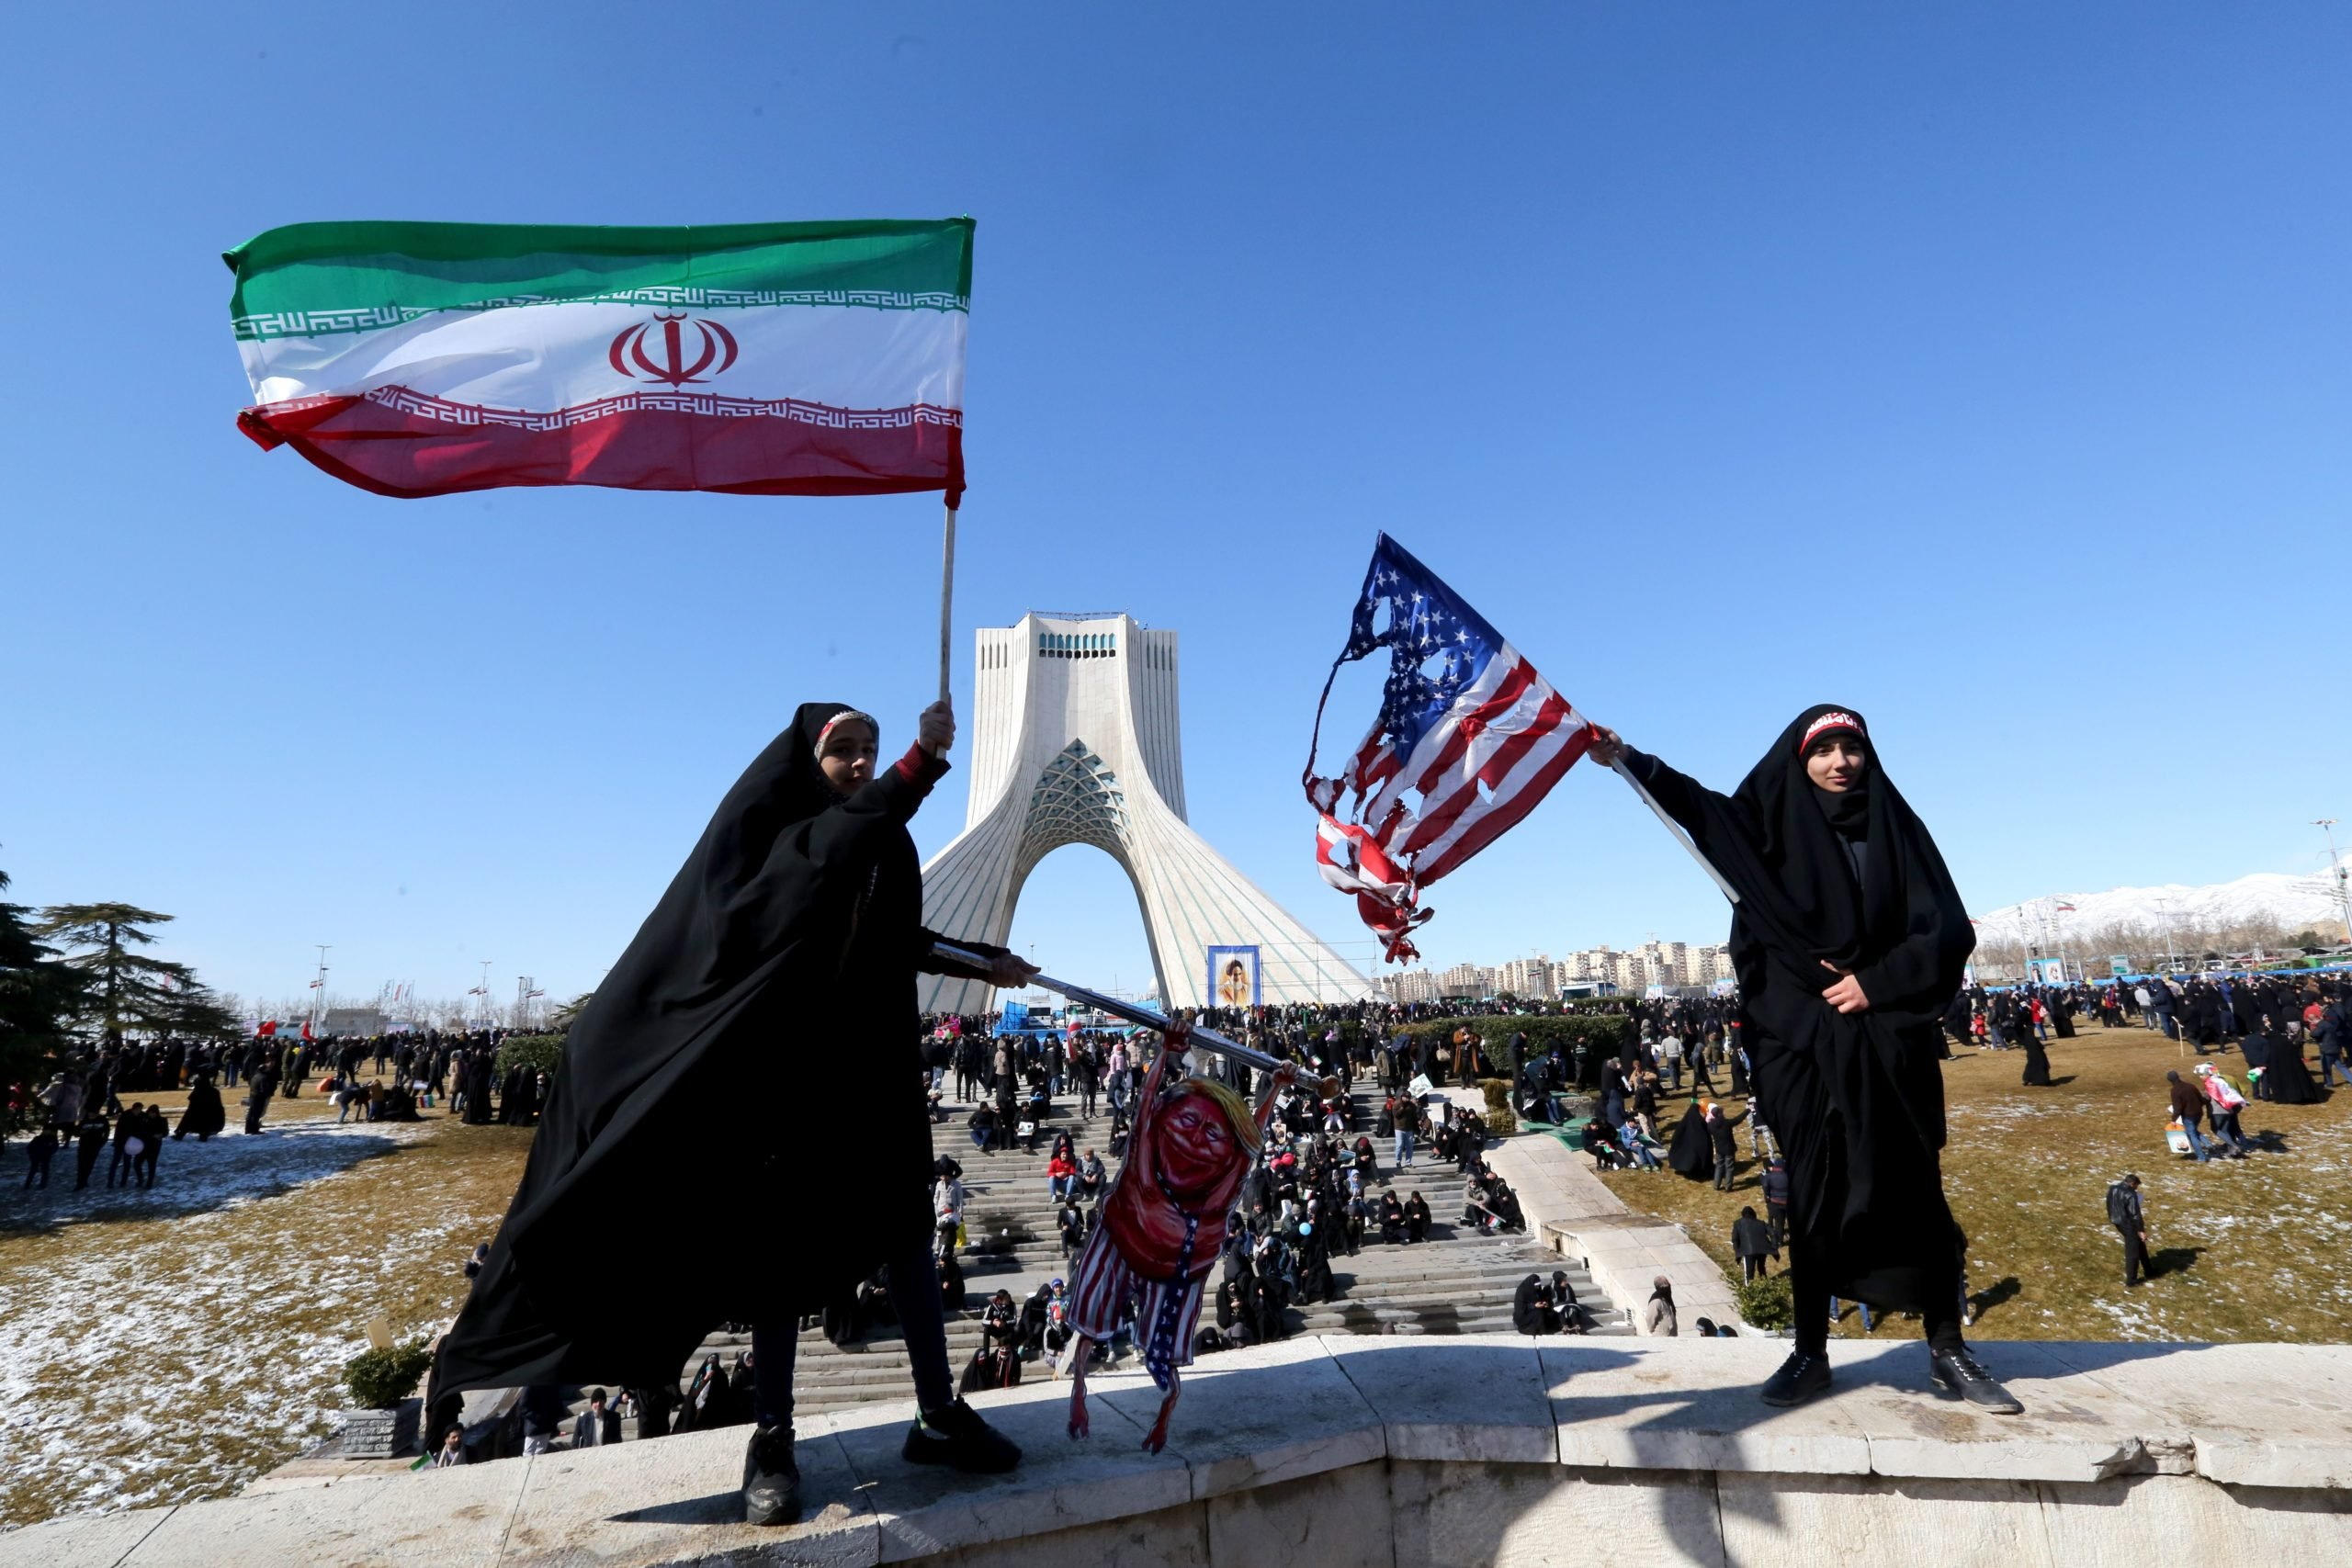 Iranian women wave a national flag (L) and a burnt US flag (R) during commemorations marking 41 years since the Islamic Revolution in the capital Tehran's Azadi Square on February 11, 2020. - Thousands of Iranians massed for commemorations marking 41 years since the Islamic Revolution, in a show of unity at a time of heightened tensions with the United States. The celebrations mark the day that Shiite cleric Khomeini returned from exile and ousted the shah's last government. (Photo by ATTA KENARE/AFP via Getty Images)